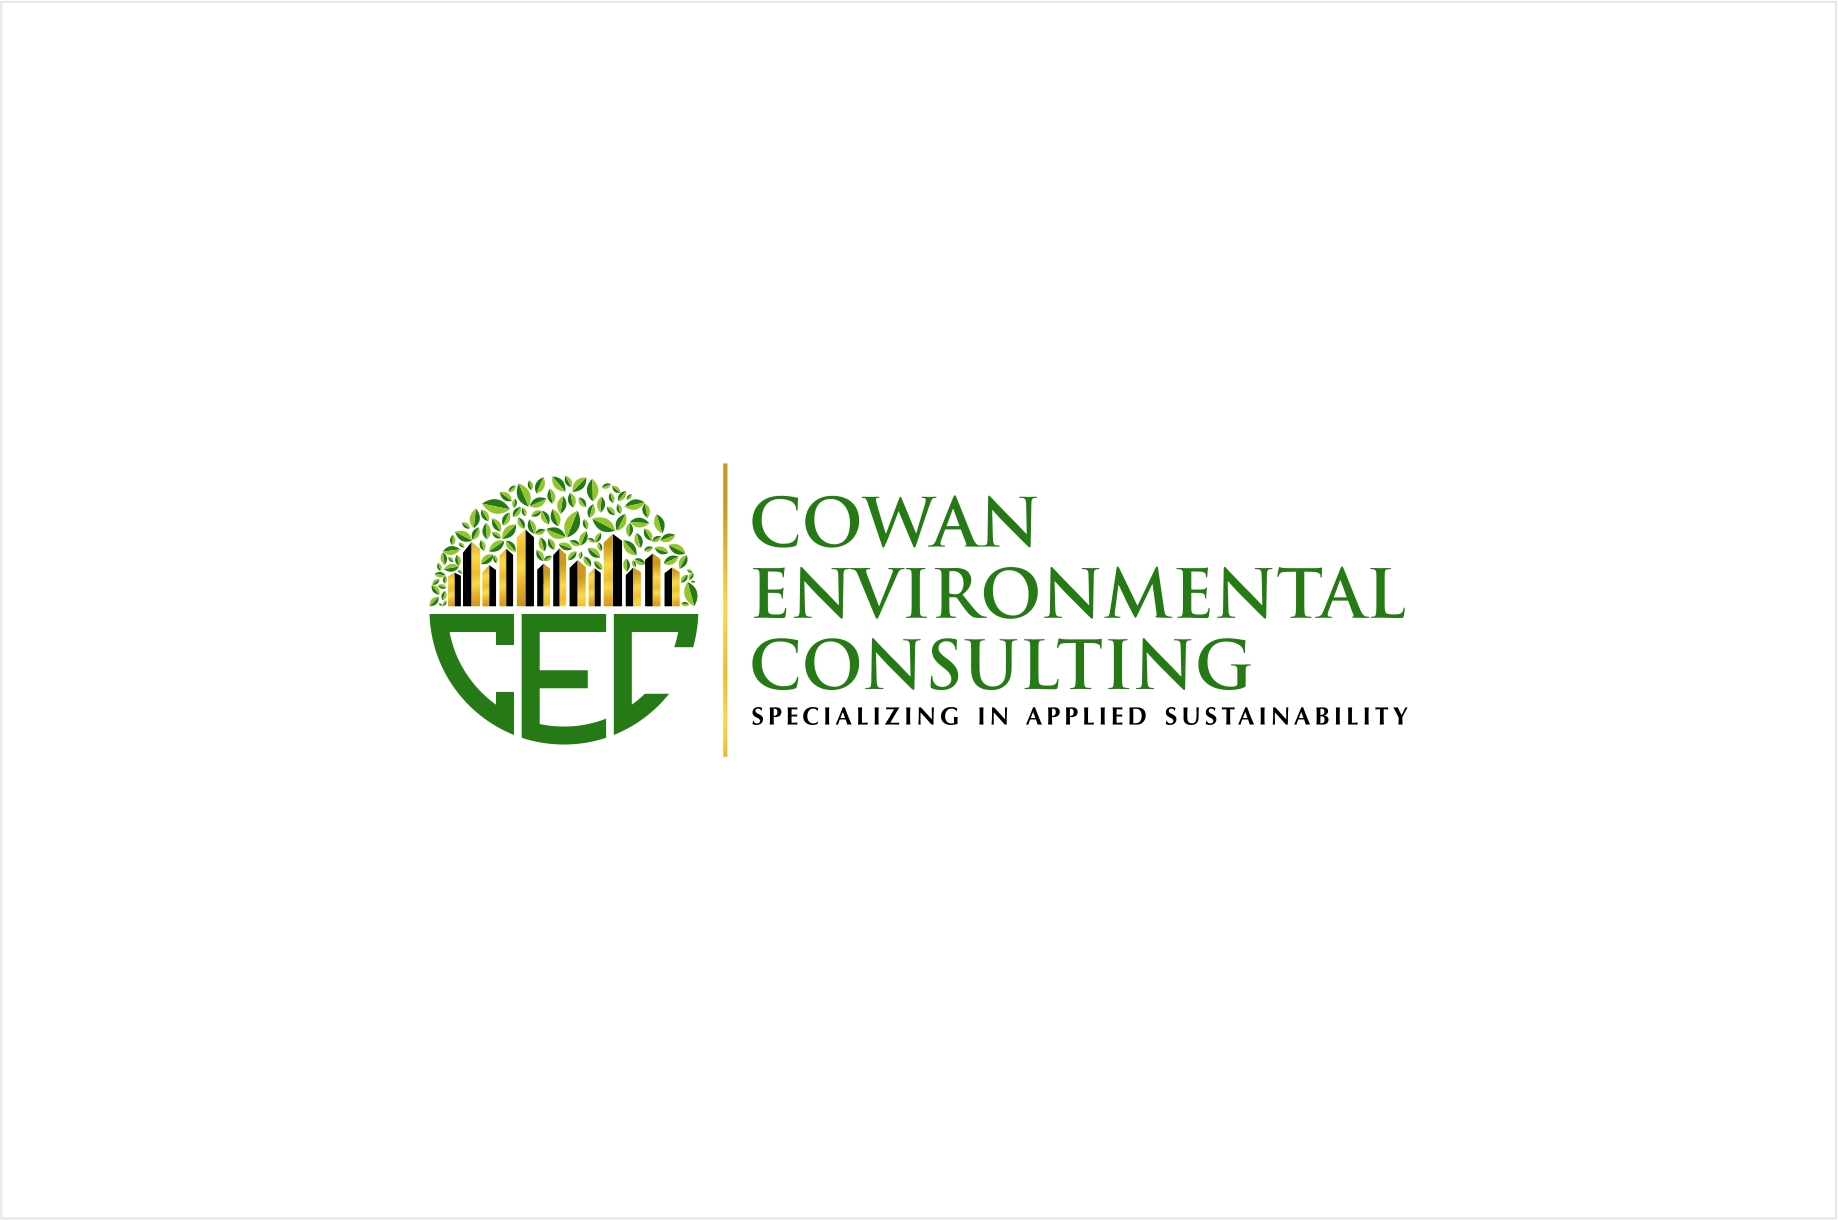 Logo Design by haidu - Entry No. 53 in the Logo Design Contest Fun Logo Design for Cowan Environmental Consulting.